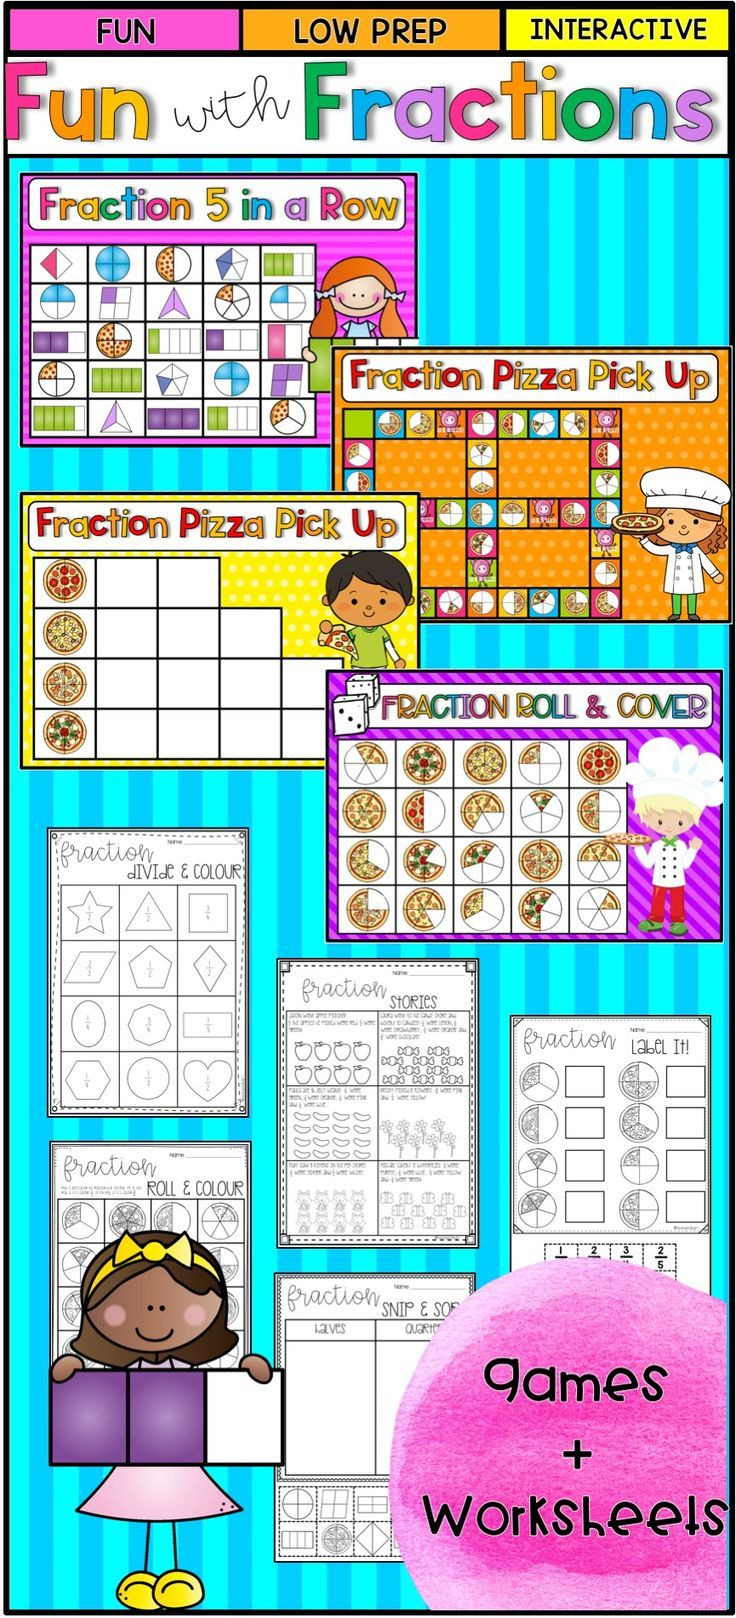 Fraction Games and Worksheets | Worksheets, Gaming and Math